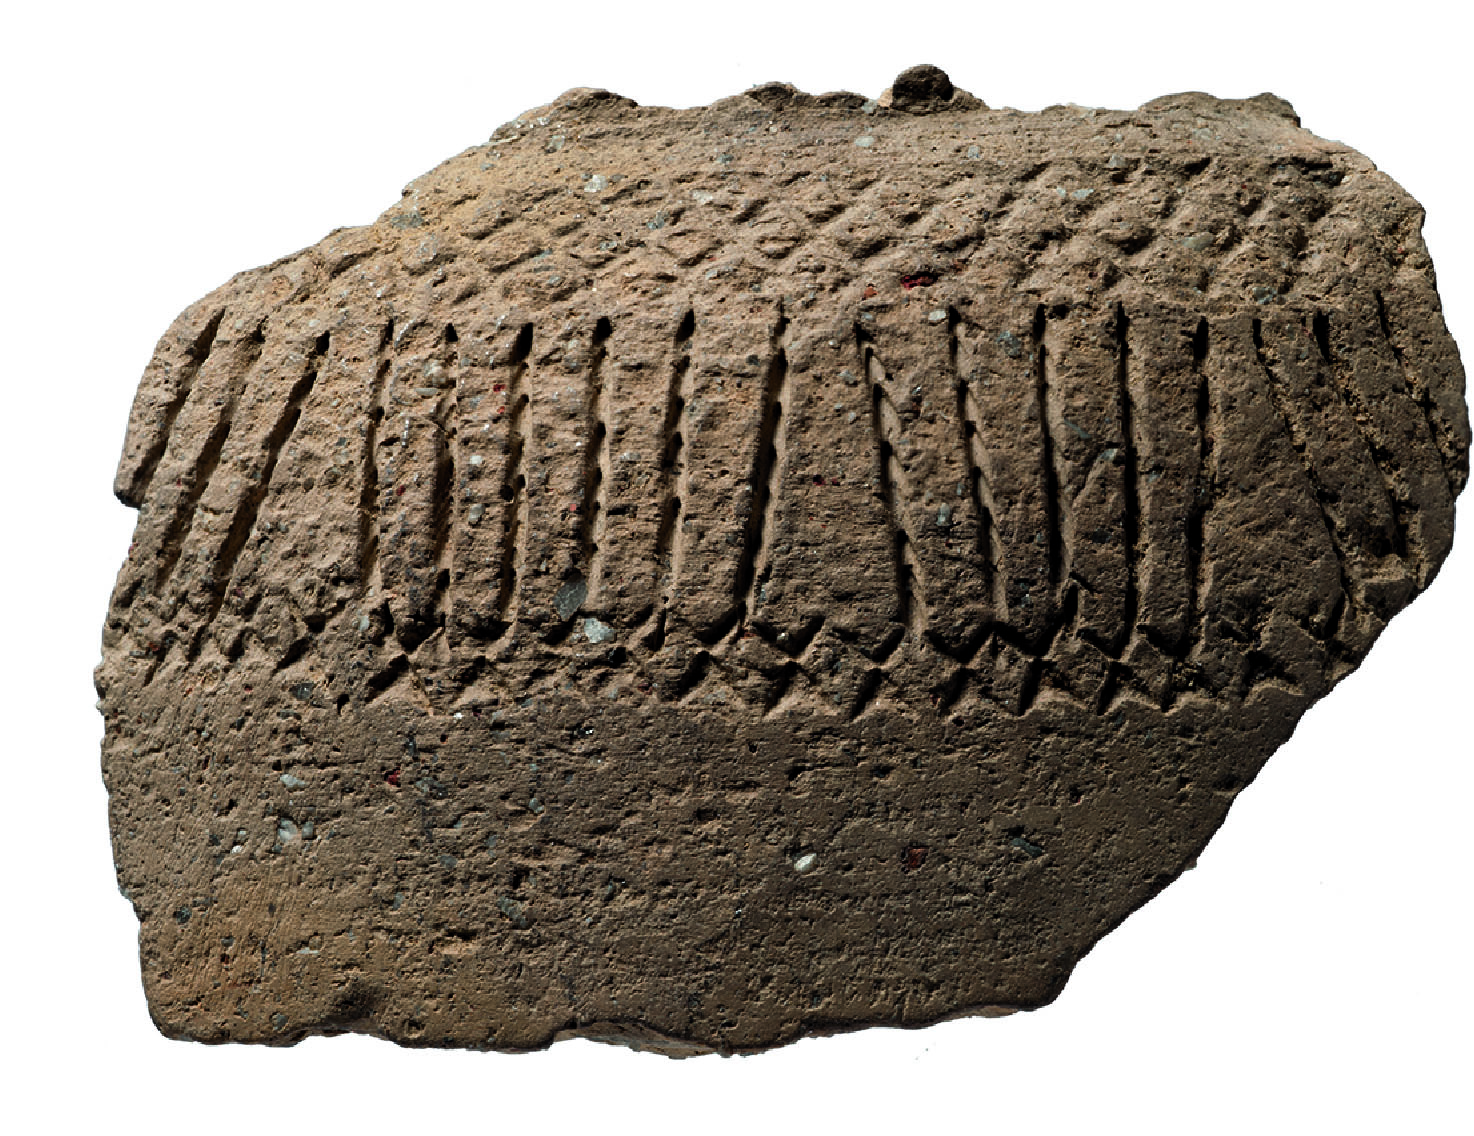 Sherd of an amphora